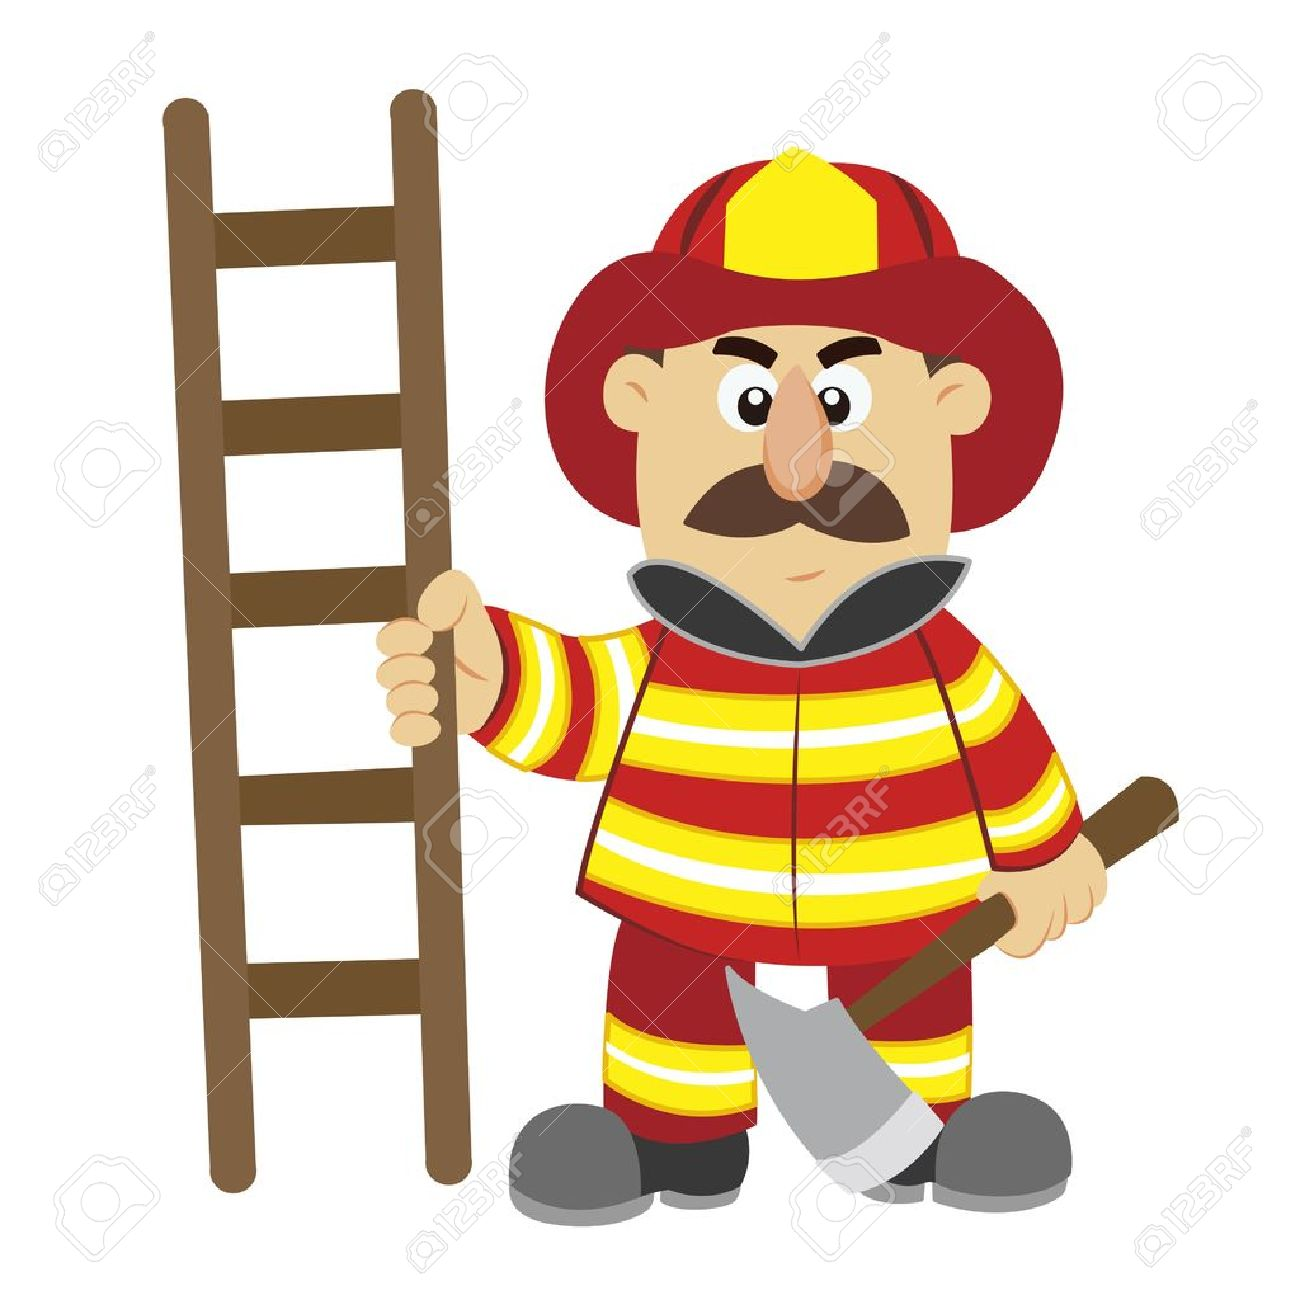 12,735 Firefighter Stock Vector Illustration And Royalty Free ...